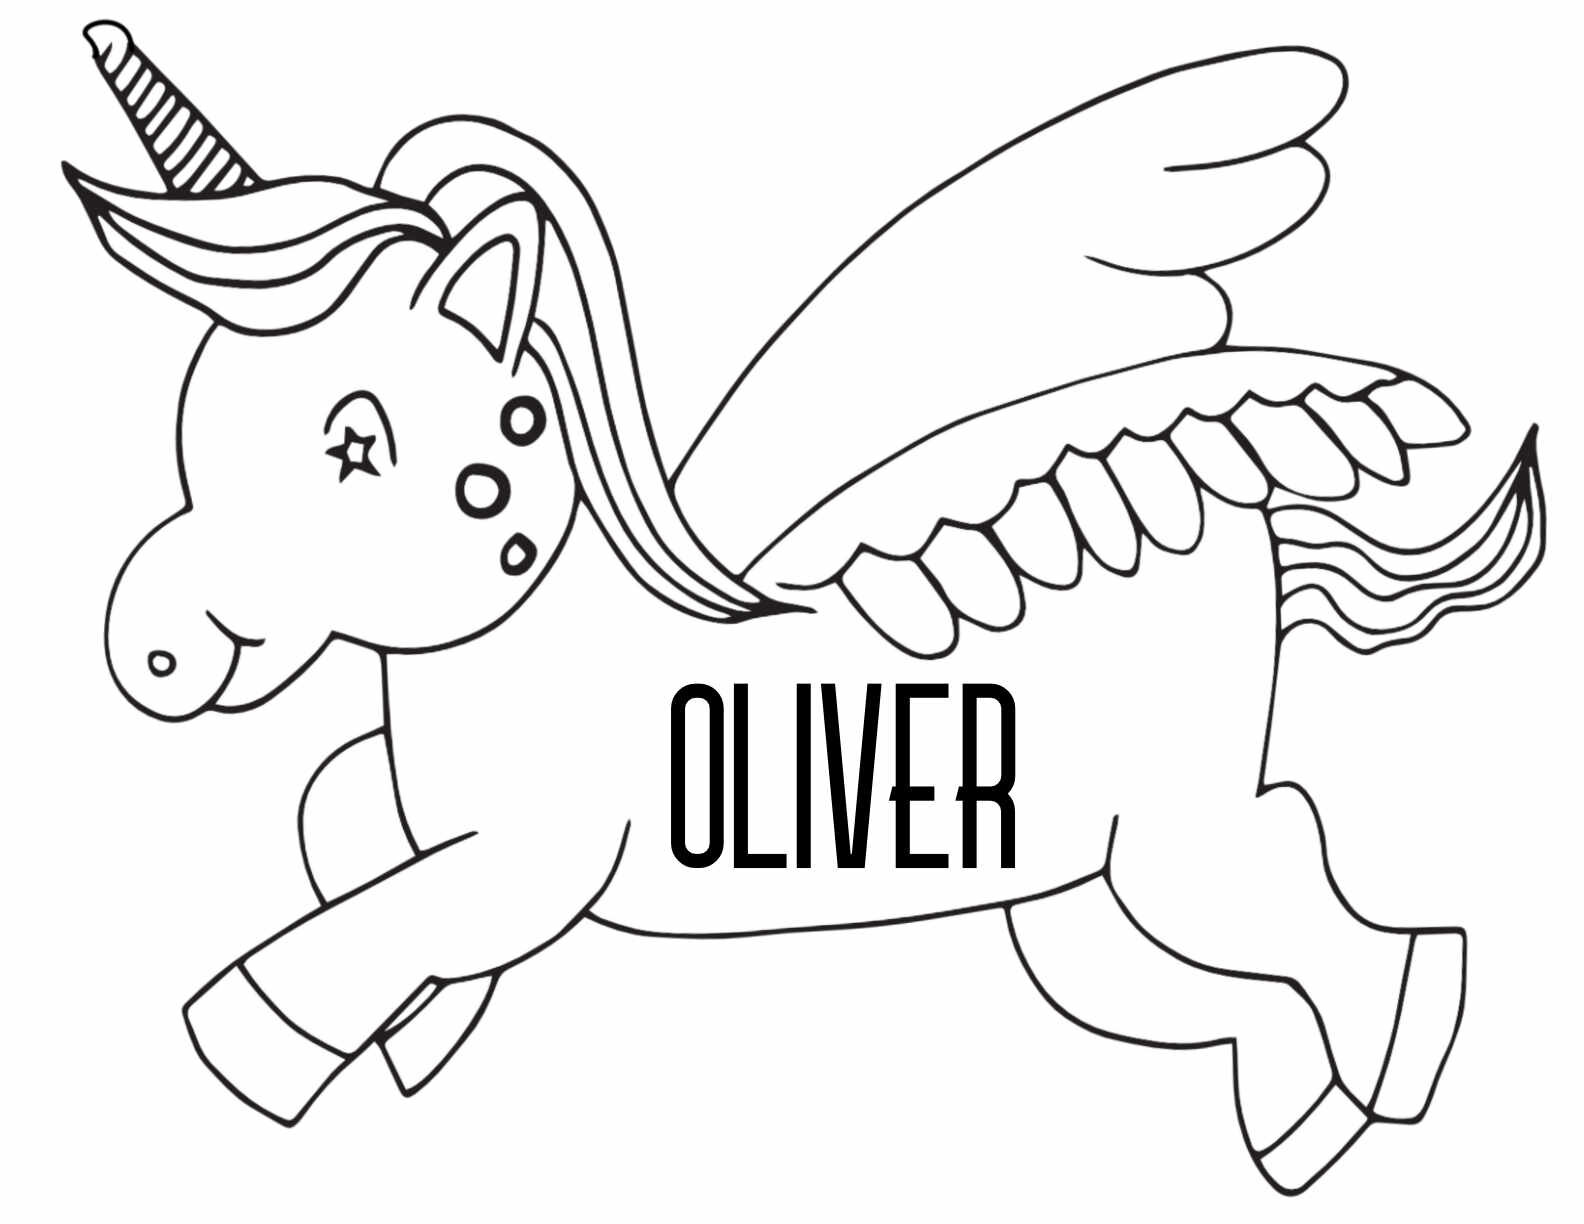 Oliver Coloring Page | H & M Coloring Pages | 773x1000